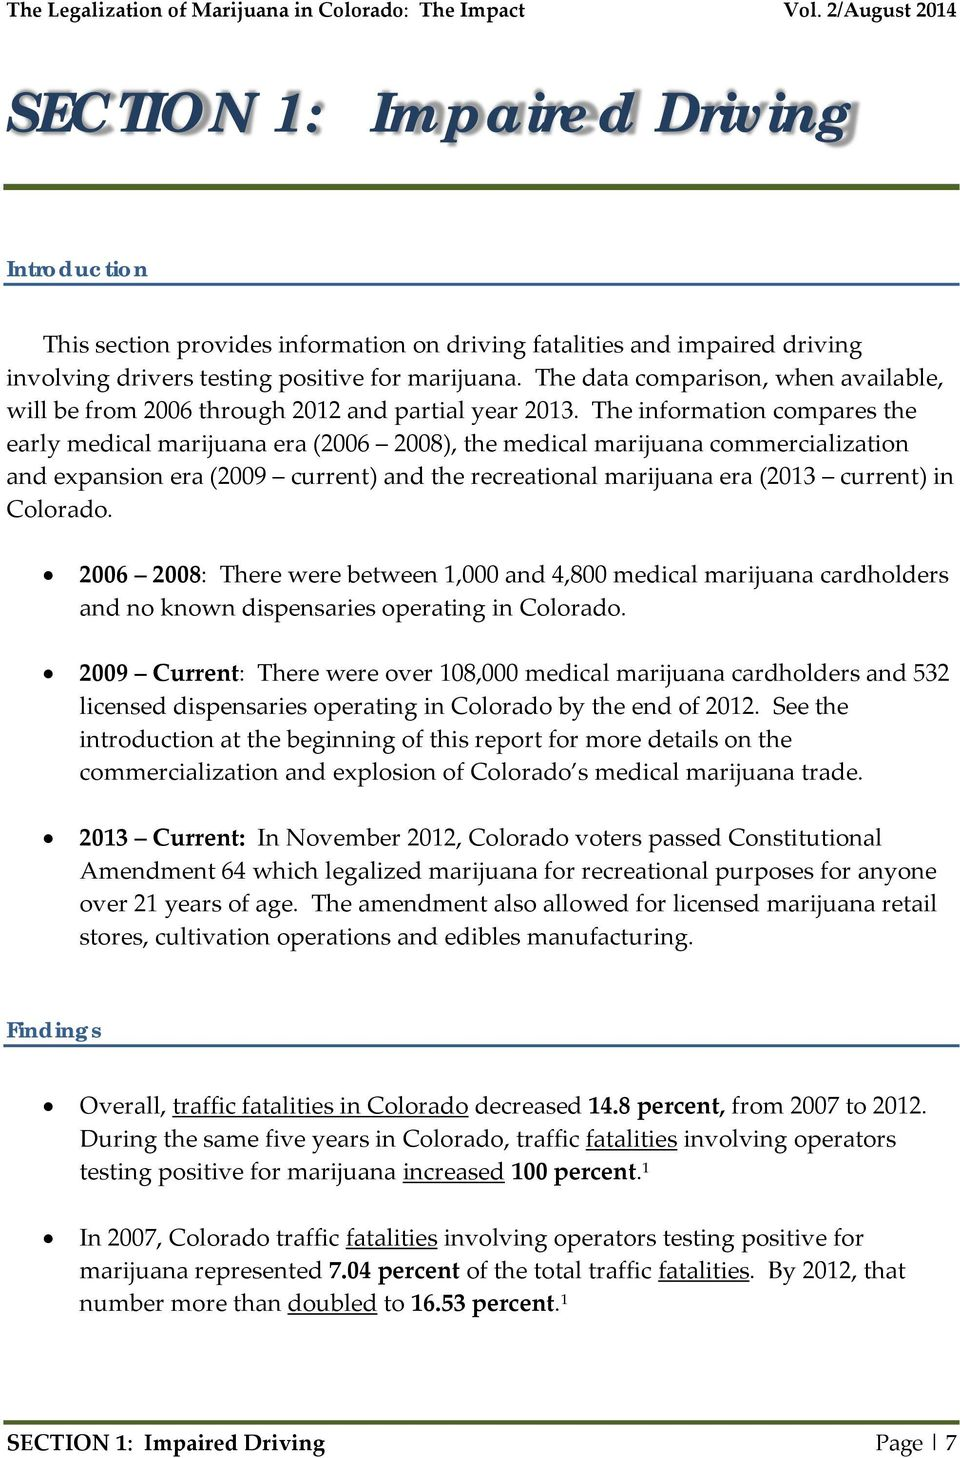 The information compares the early medical marijuana era (2006 2008), the medical marijuana commercialization and expansion era (2009 current) and the recreational marijuana era (2013 current) in